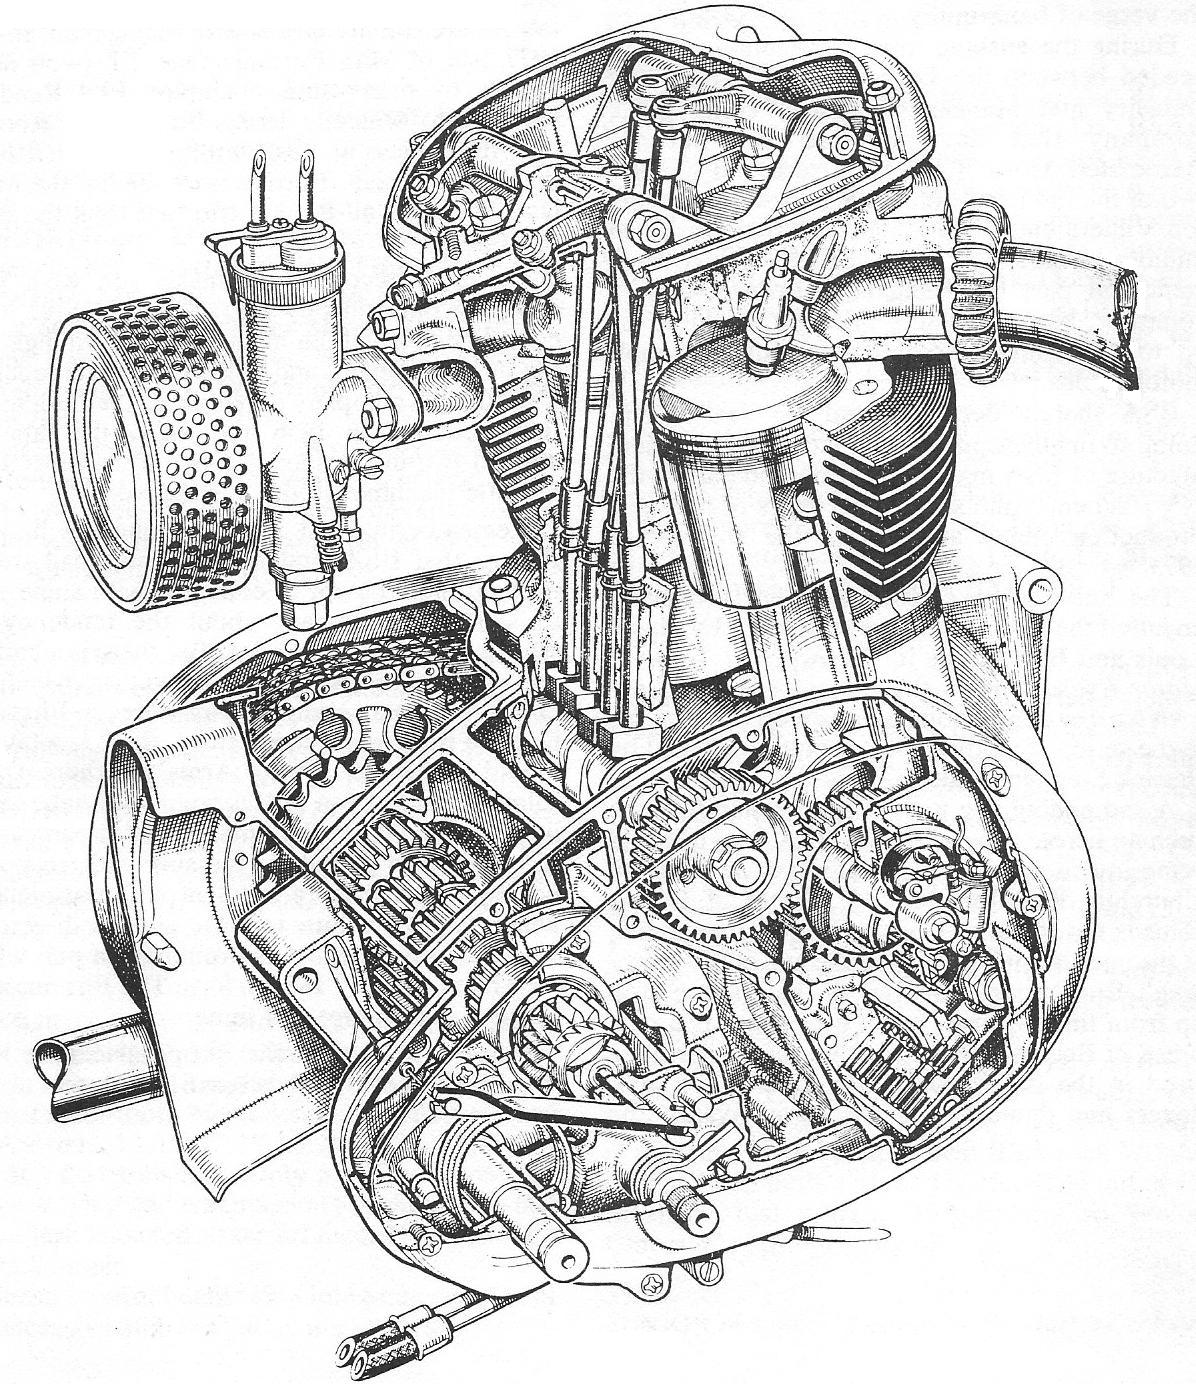 Motorcycle engine drawing at getdrawings free for personal use